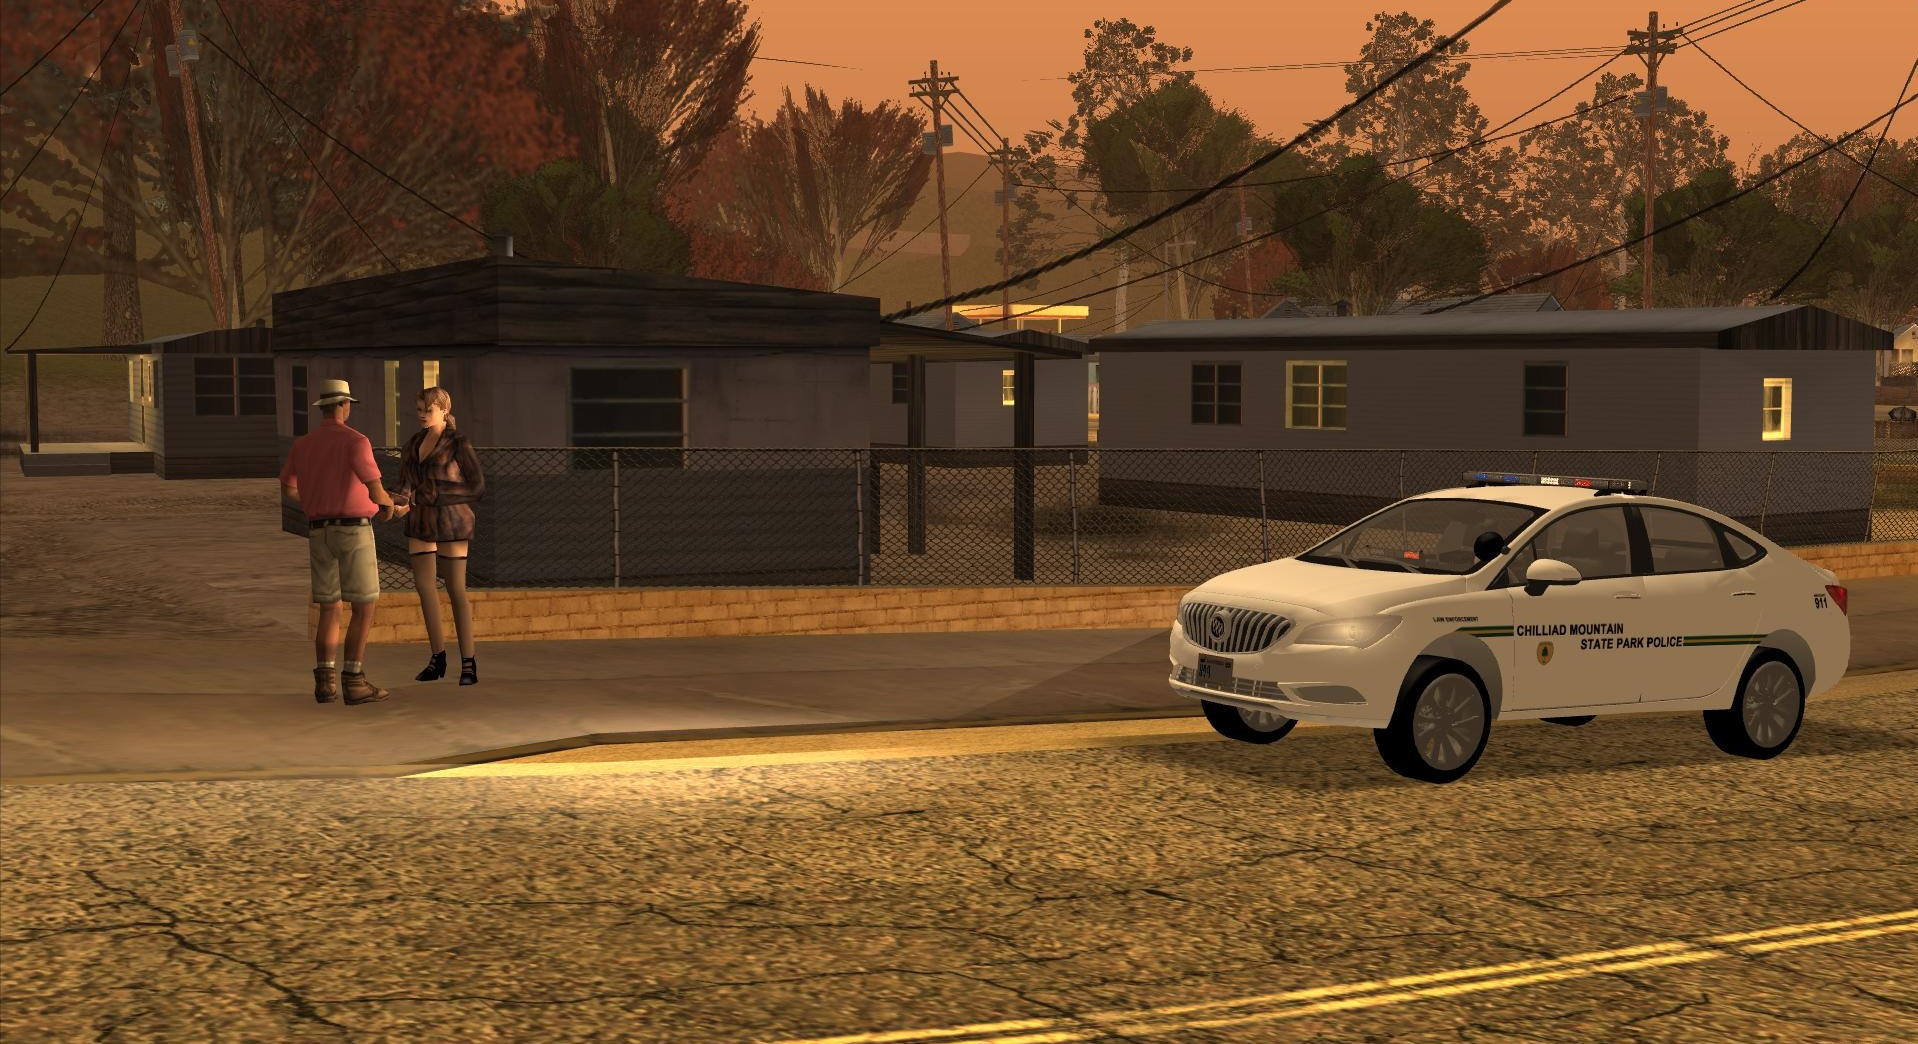 A Chilliad Mountain State Park Police officer investigates at the scene of reported prostitution. - posted by Thatoneiowan